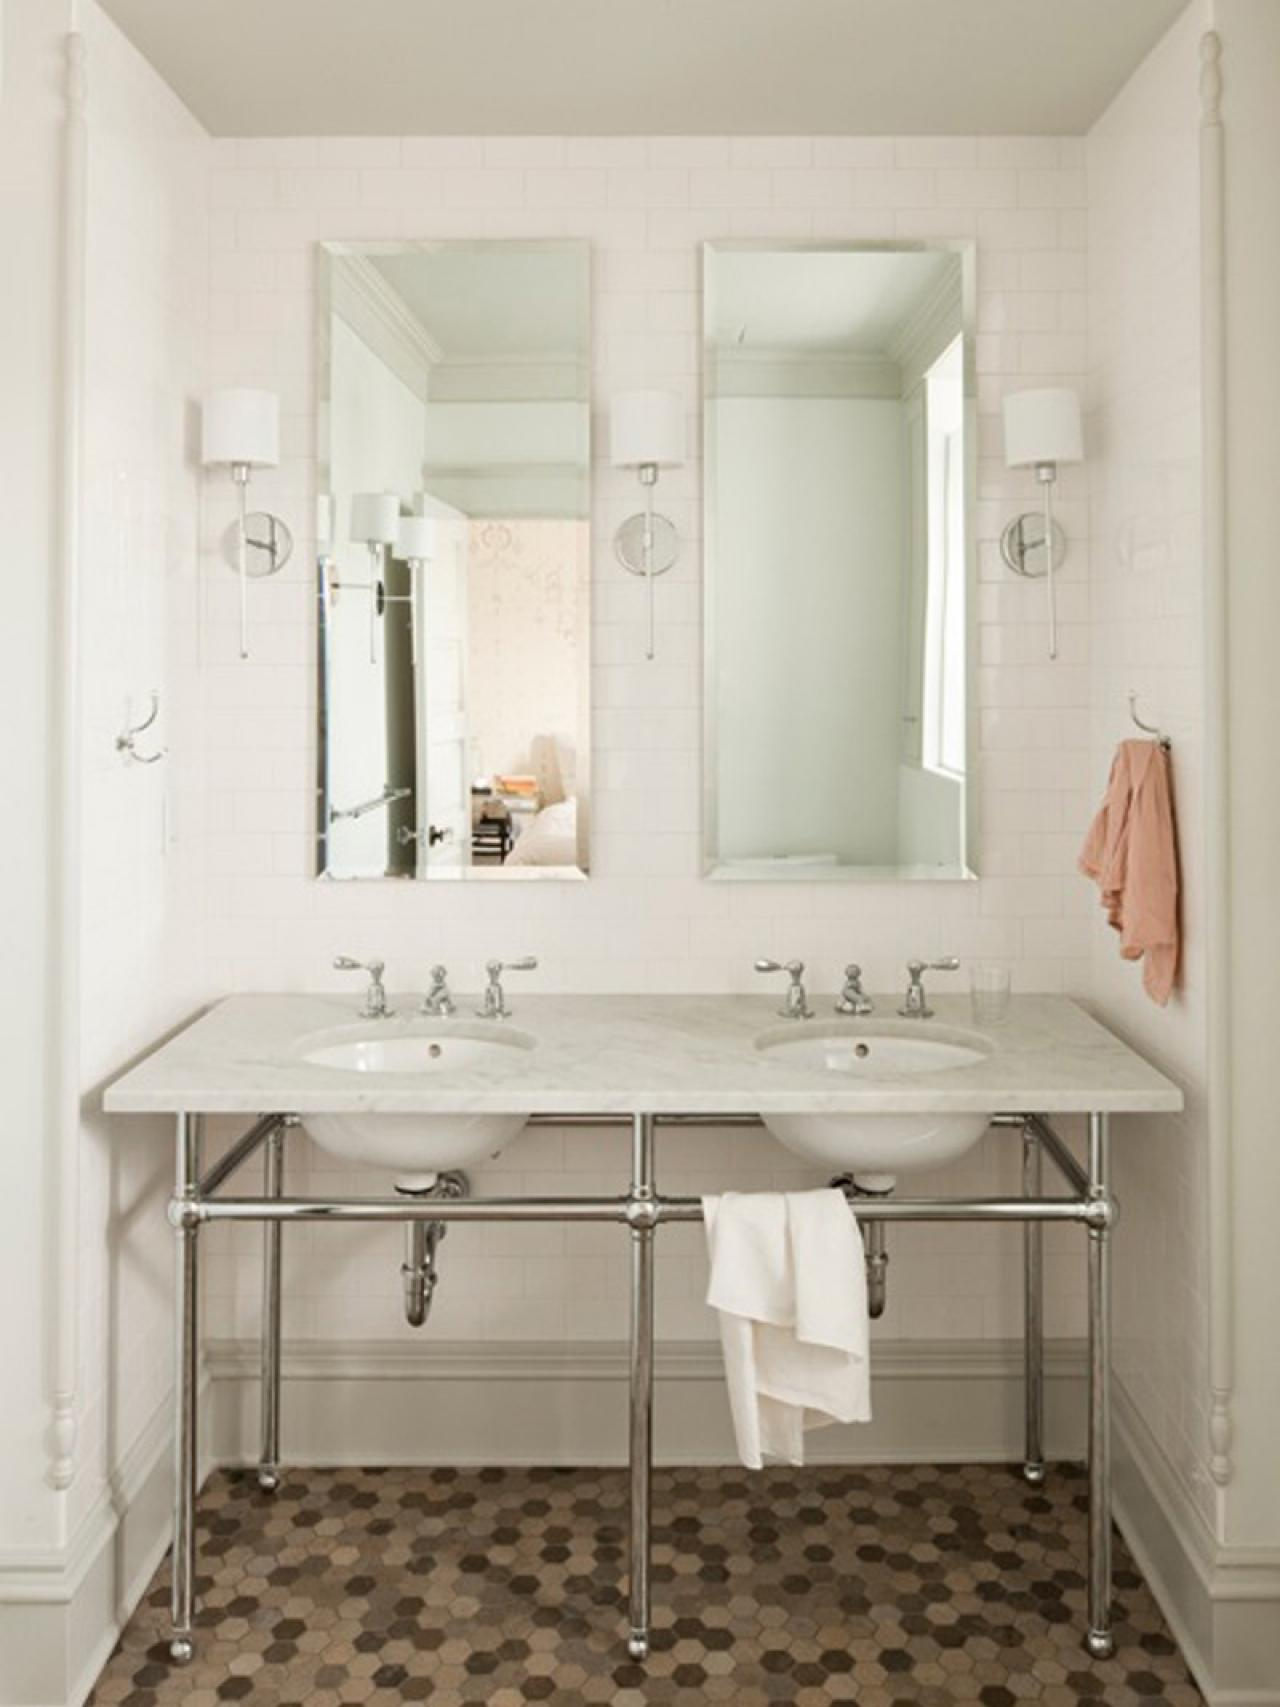 Photos hgtv Stainless steel bathroom vanities